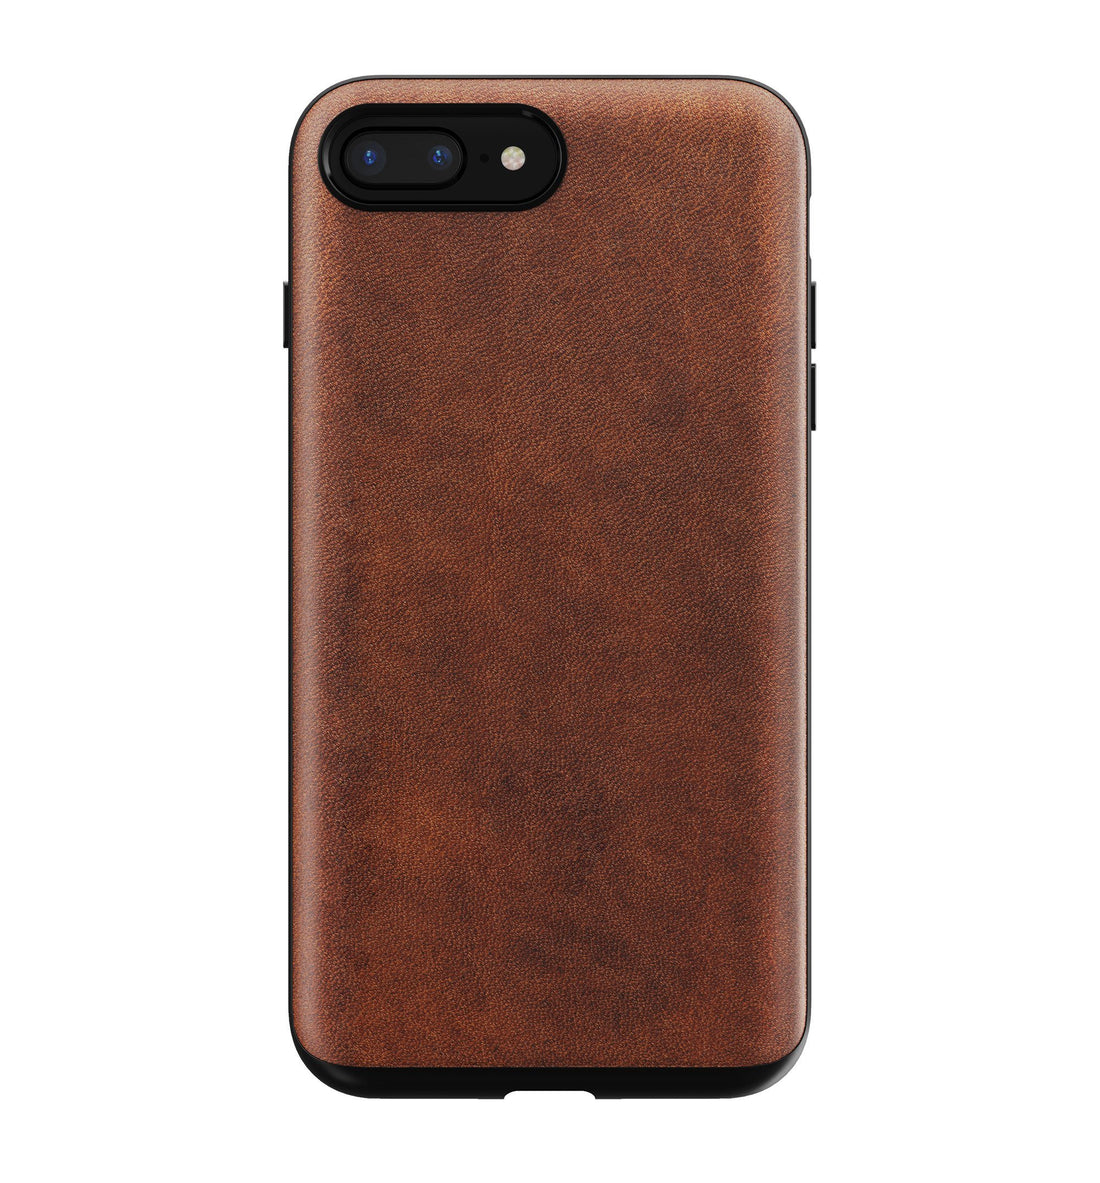 Nomad Rugged Leather Case - Rustic Brown - iPhone 8/7 Plus - Carry Essentials - Iron and Resin